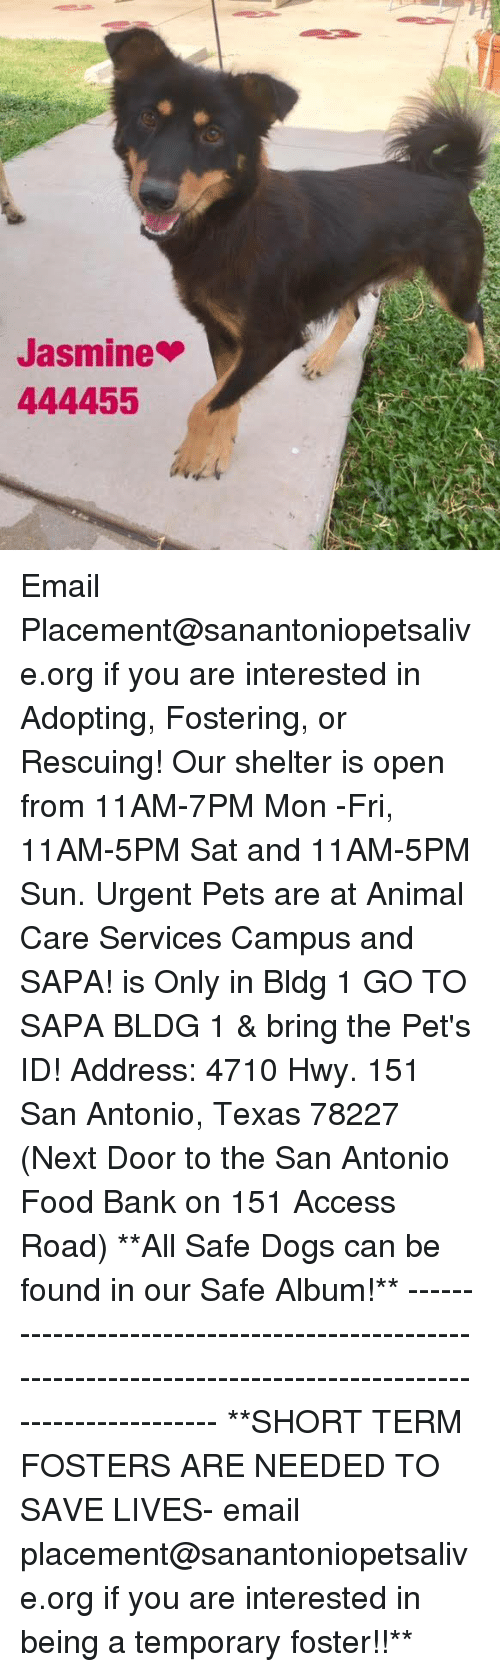 Dogs, Food, and Memes: Jasmine  444455 Email Placement@sanantoniopetsalive.org if you are interested in Adopting, Fostering, or Rescuing!  Our shelter is open from 11AM-7PM Mon -Fri, 11AM-5PM Sat and 11AM-5PM Sun.  Urgent Pets are at Animal Care Services Campus and SAPA! is Only in Bldg 1 GO TO SAPA BLDG 1 & bring the Pet's ID! Address: 4710 Hwy. 151 San Antonio, Texas 78227 (Next Door to the San Antonio Food Bank on 151 Access Road)  **All Safe Dogs can be found in our Safe Album!** ---------------------------------------------------------------------------------------------------------- **SHORT TERM FOSTERS ARE NEEDED TO SAVE LIVES- email placement@sanantoniopetsalive.org if you are interested in being a temporary foster!!**